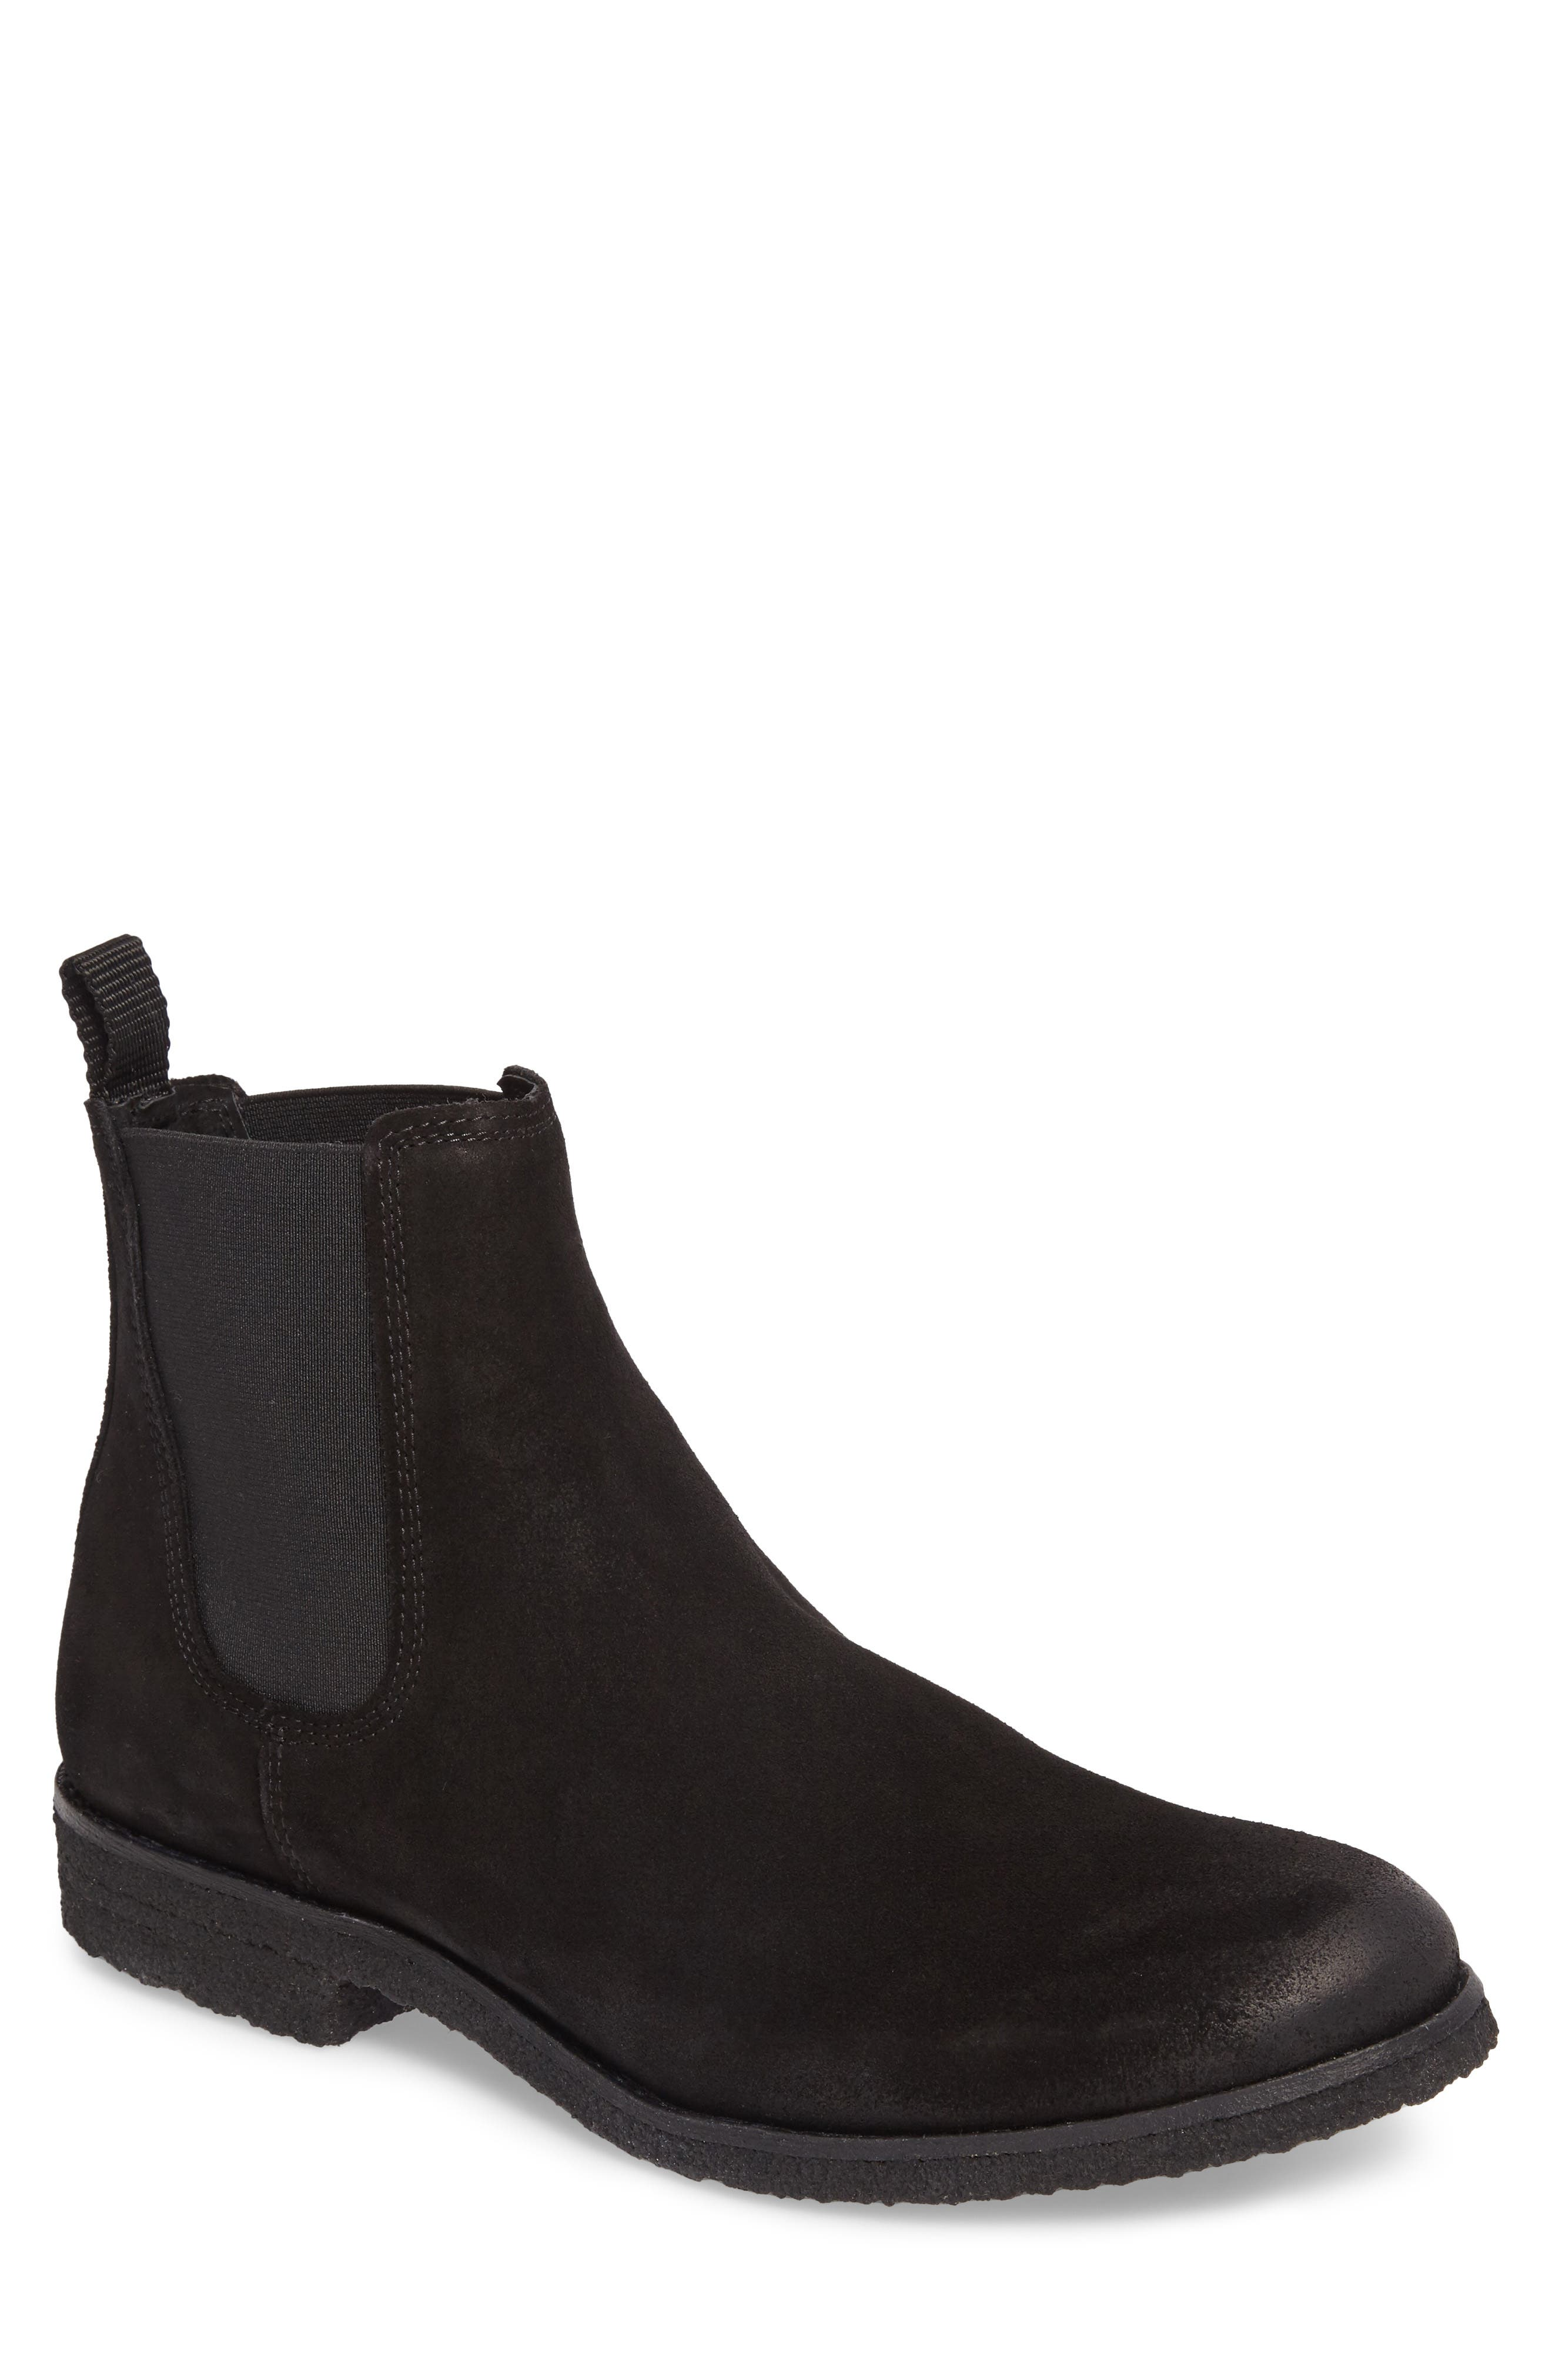 SUPPLY LAB Jared Chelsea Boot, Main, color, 002